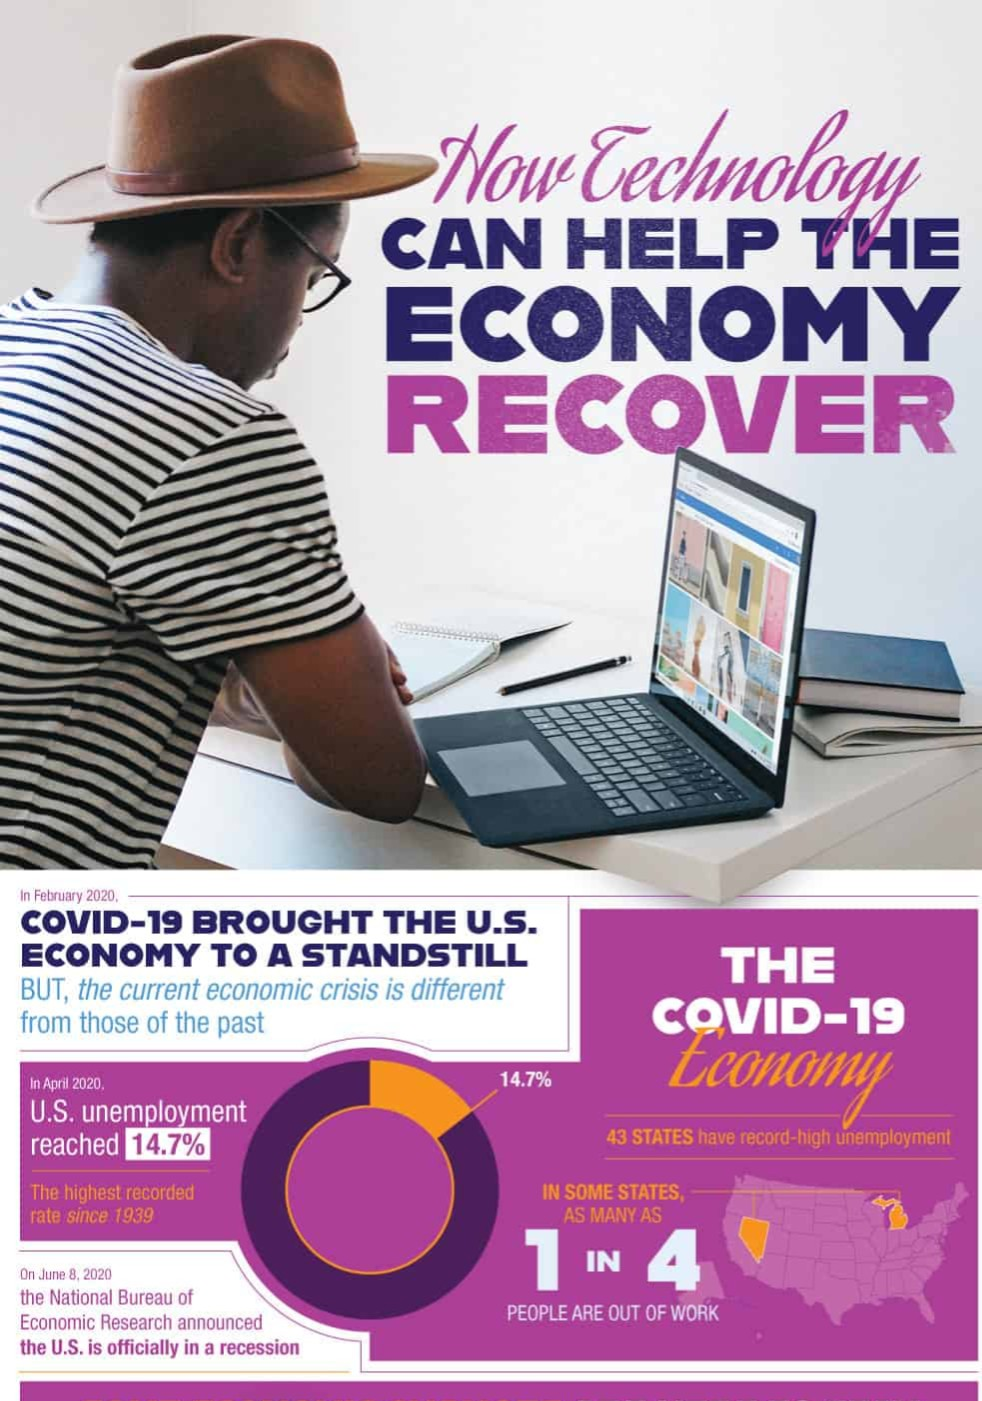 how tech can help the economy recover infographic